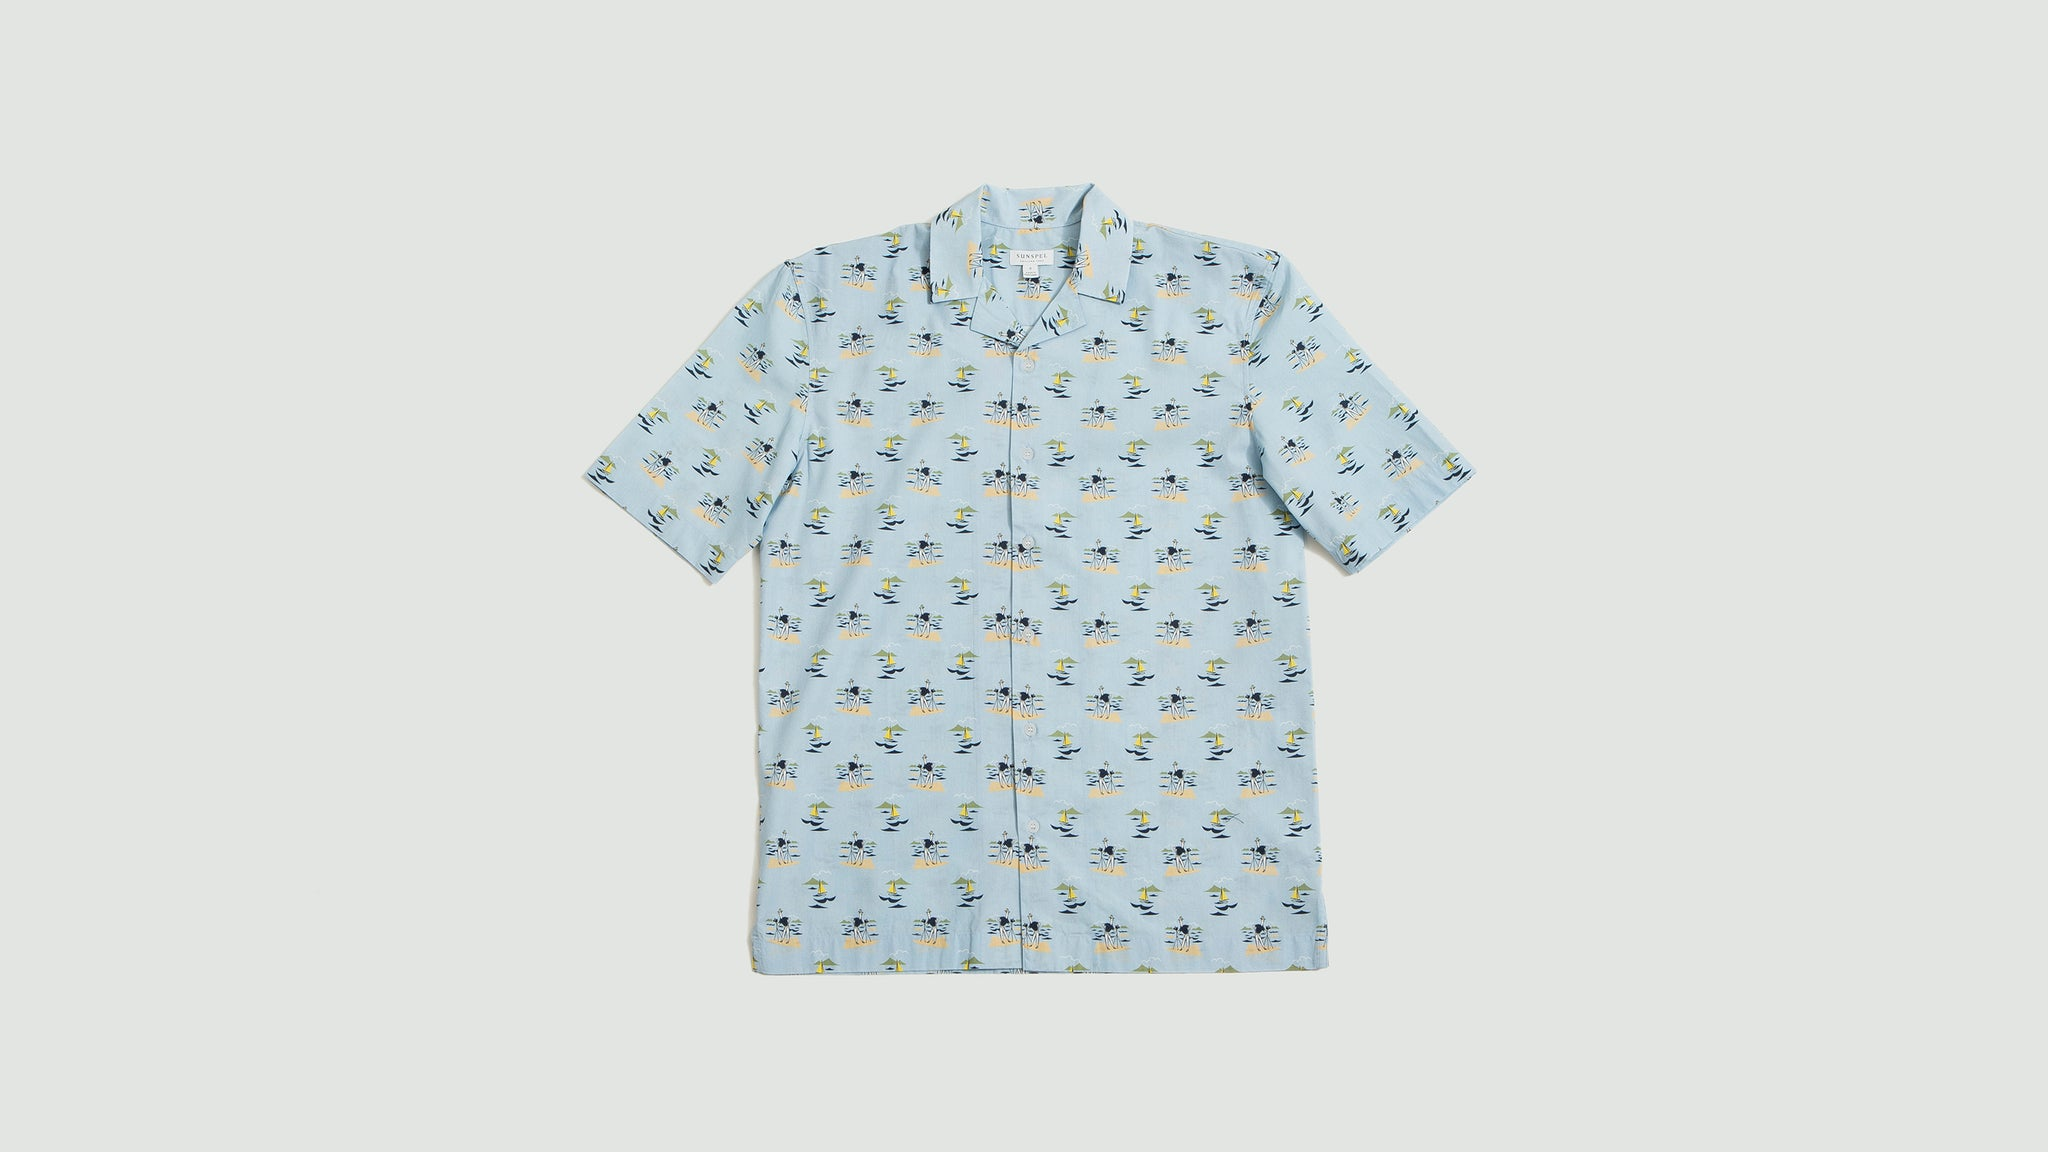 Sunspel. Short sleeve shirt sorimachi camera man print